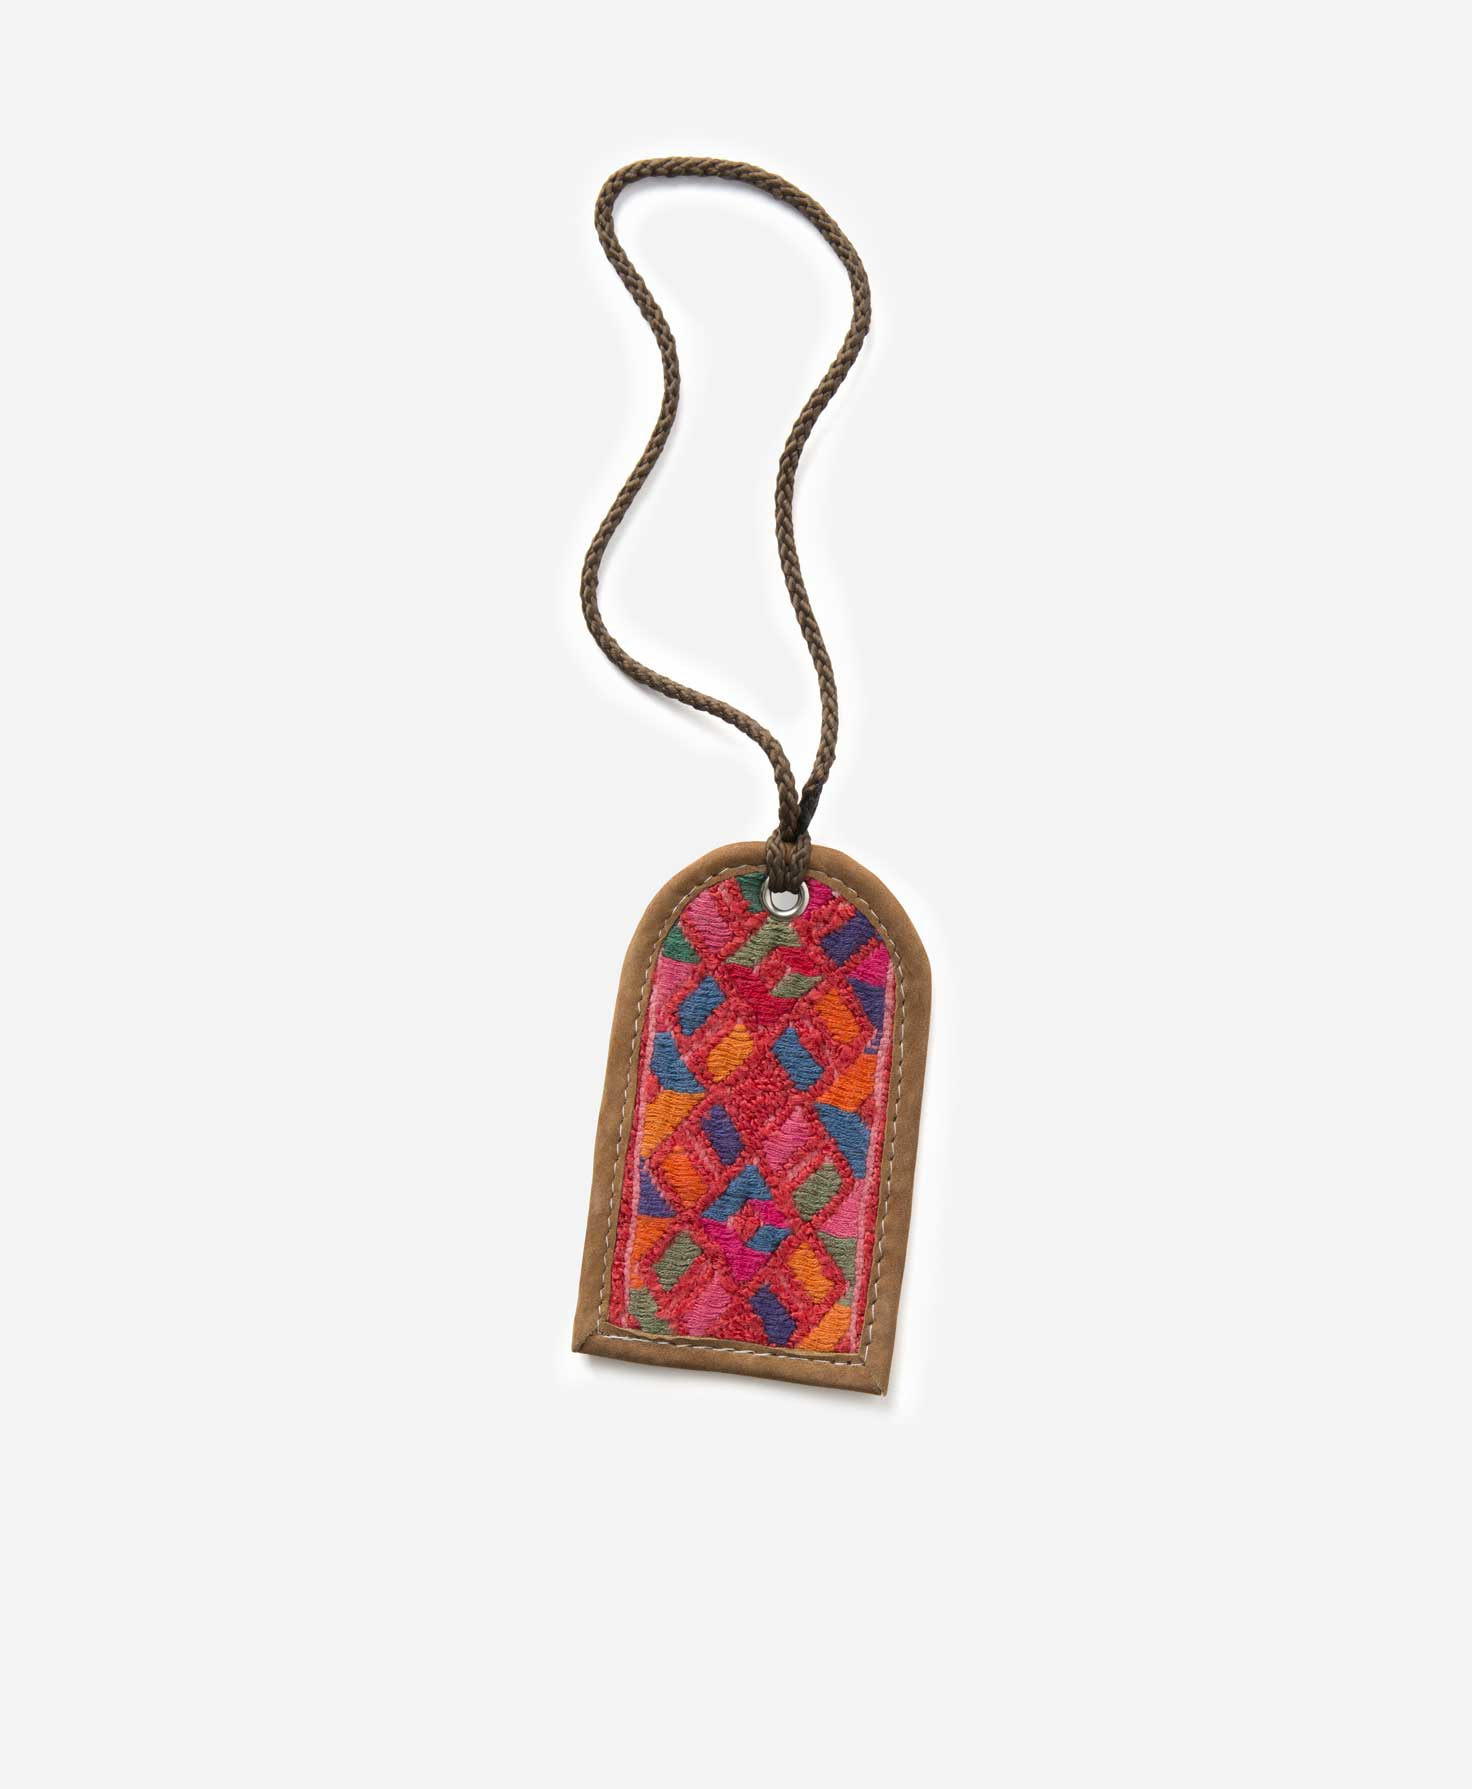 One Huipil Luggage tag lays on a white surface. The tag is shaped like a rectangle with a rounded top. The border is made of leather in a dark caramel shade, and in the center is a vibrant woven textile in a traditional Guatemalan pattern. The pattern and color of each tag varies, but all are bright and feature geometric patterns. At the top of the tag, a brown cord loops through the fabric, allowing the tag to be attached to a bag.